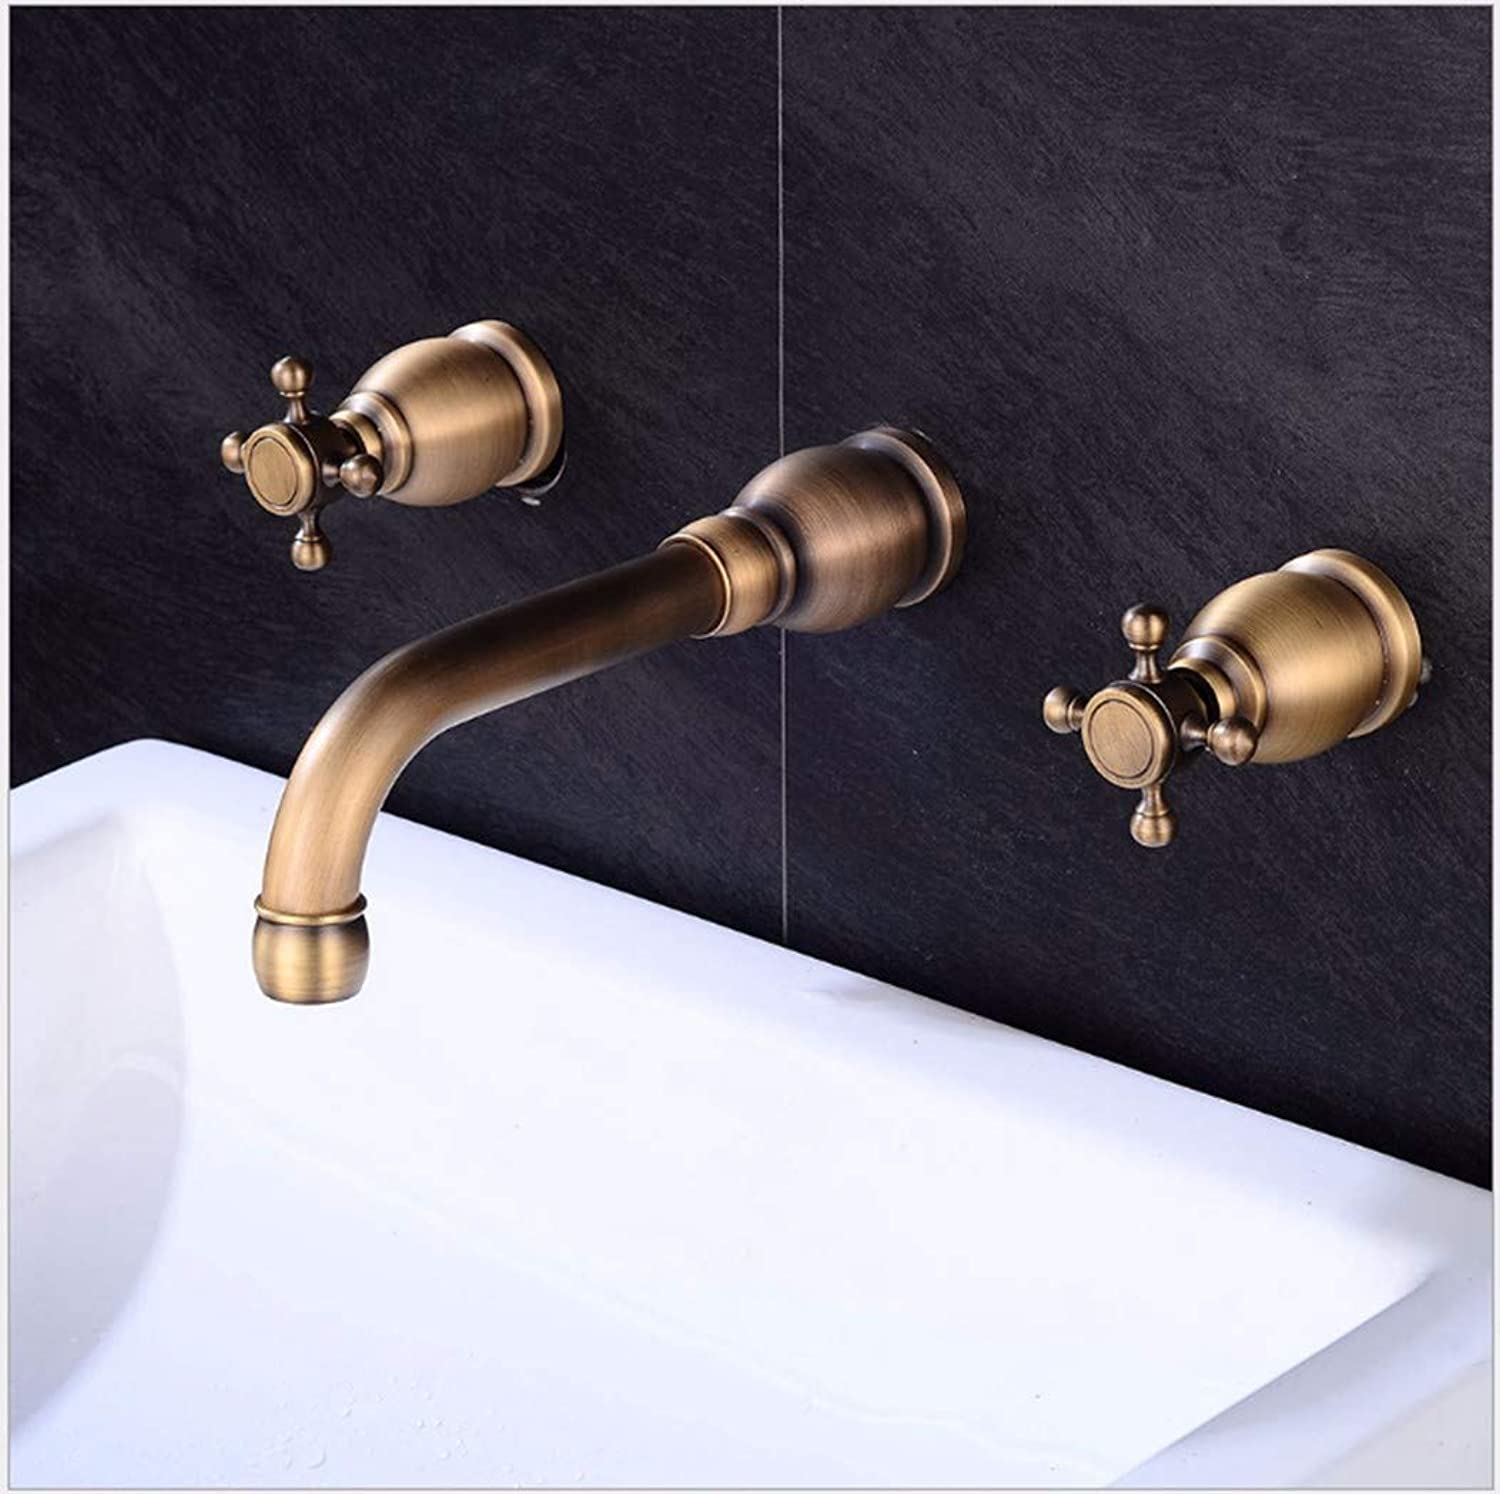 PatTheTap Wall Faucet Retro Metal Copper Bathroom Washbasin Hot and Cold Dual Mode